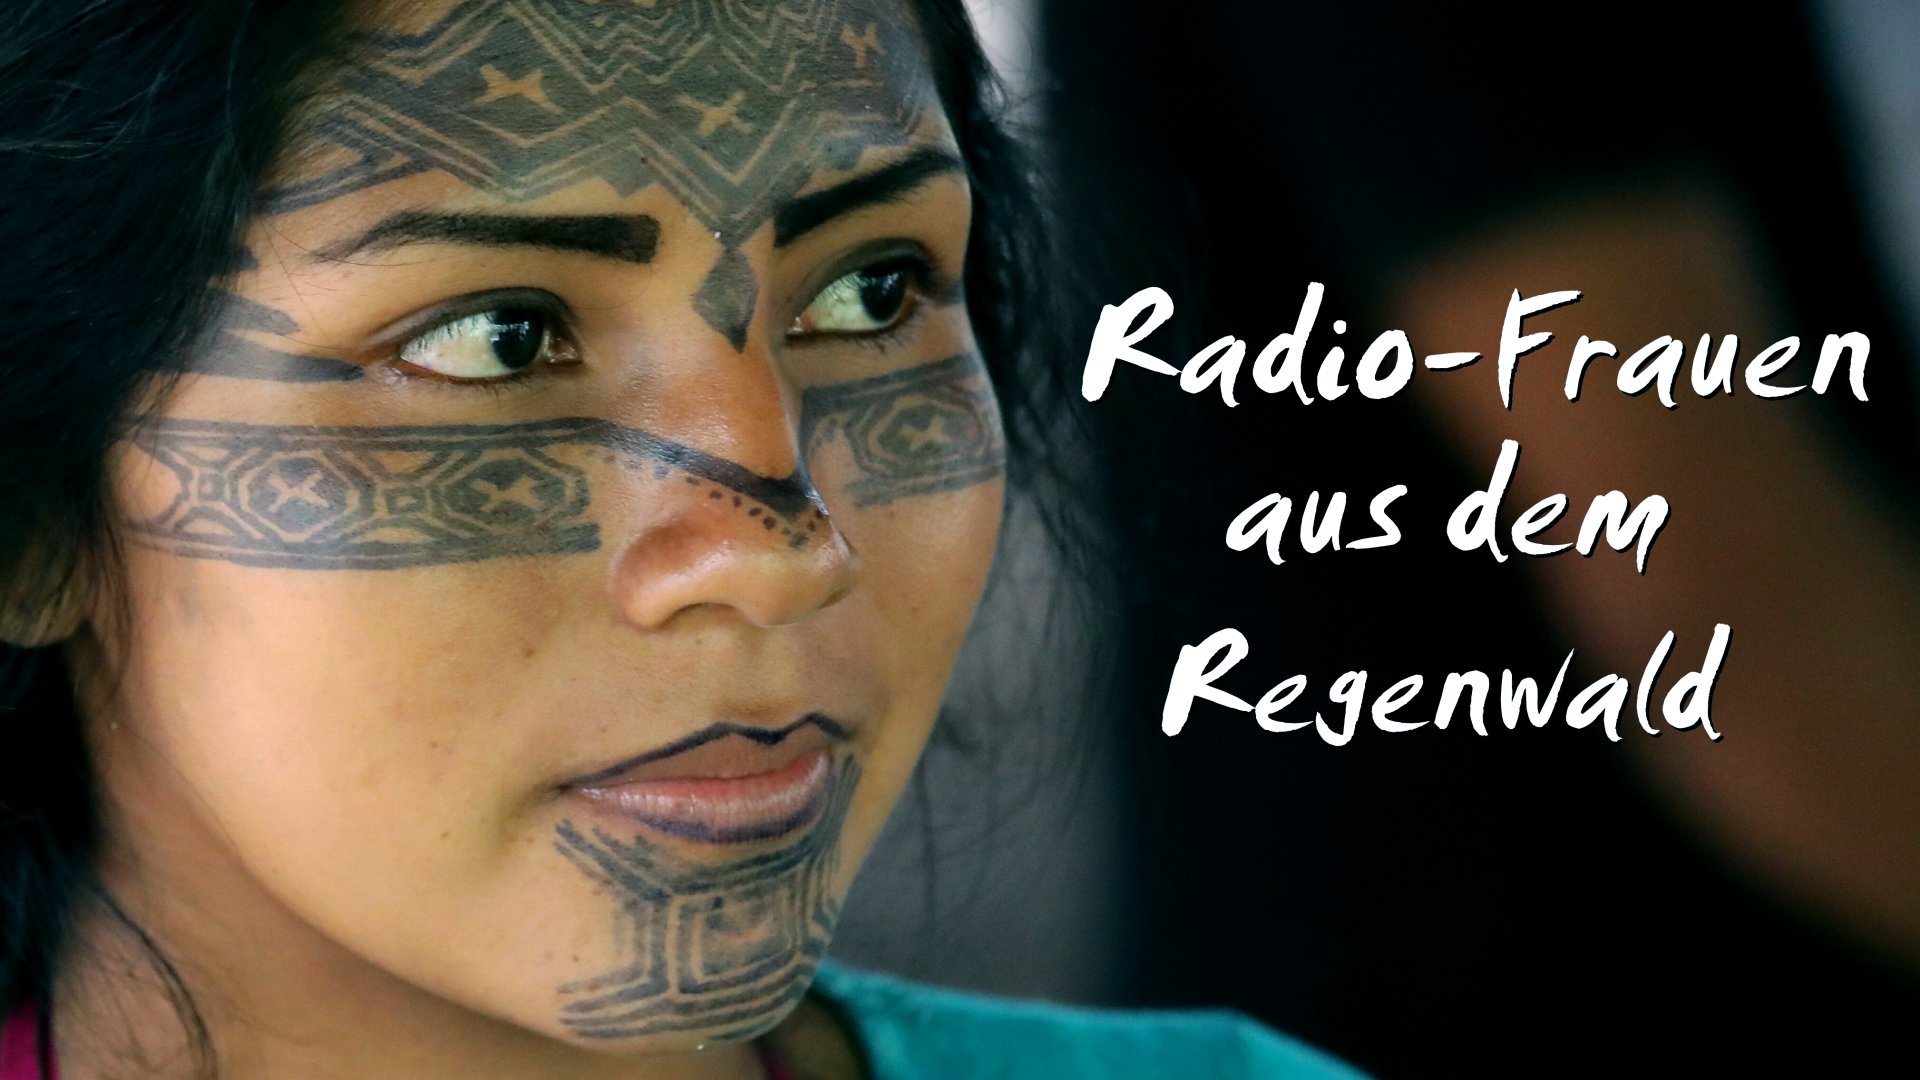 Radio reporters from the rainforest